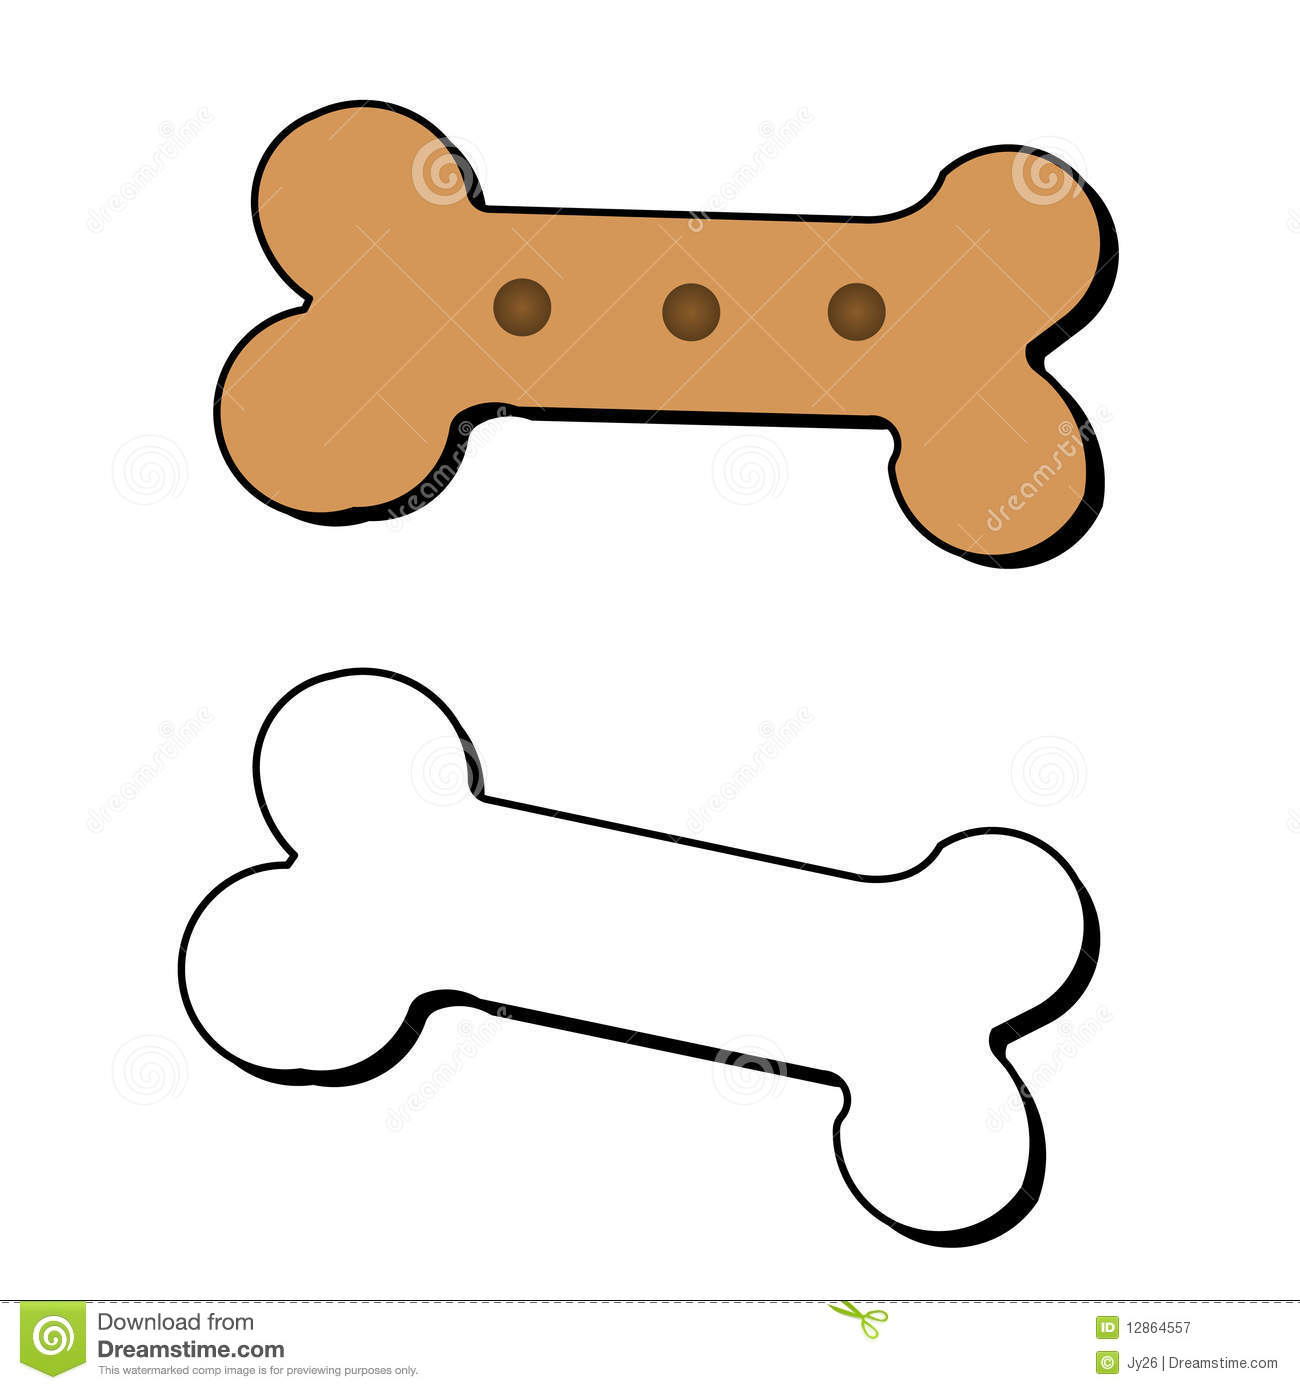 Dog bone vector free download - photo#19